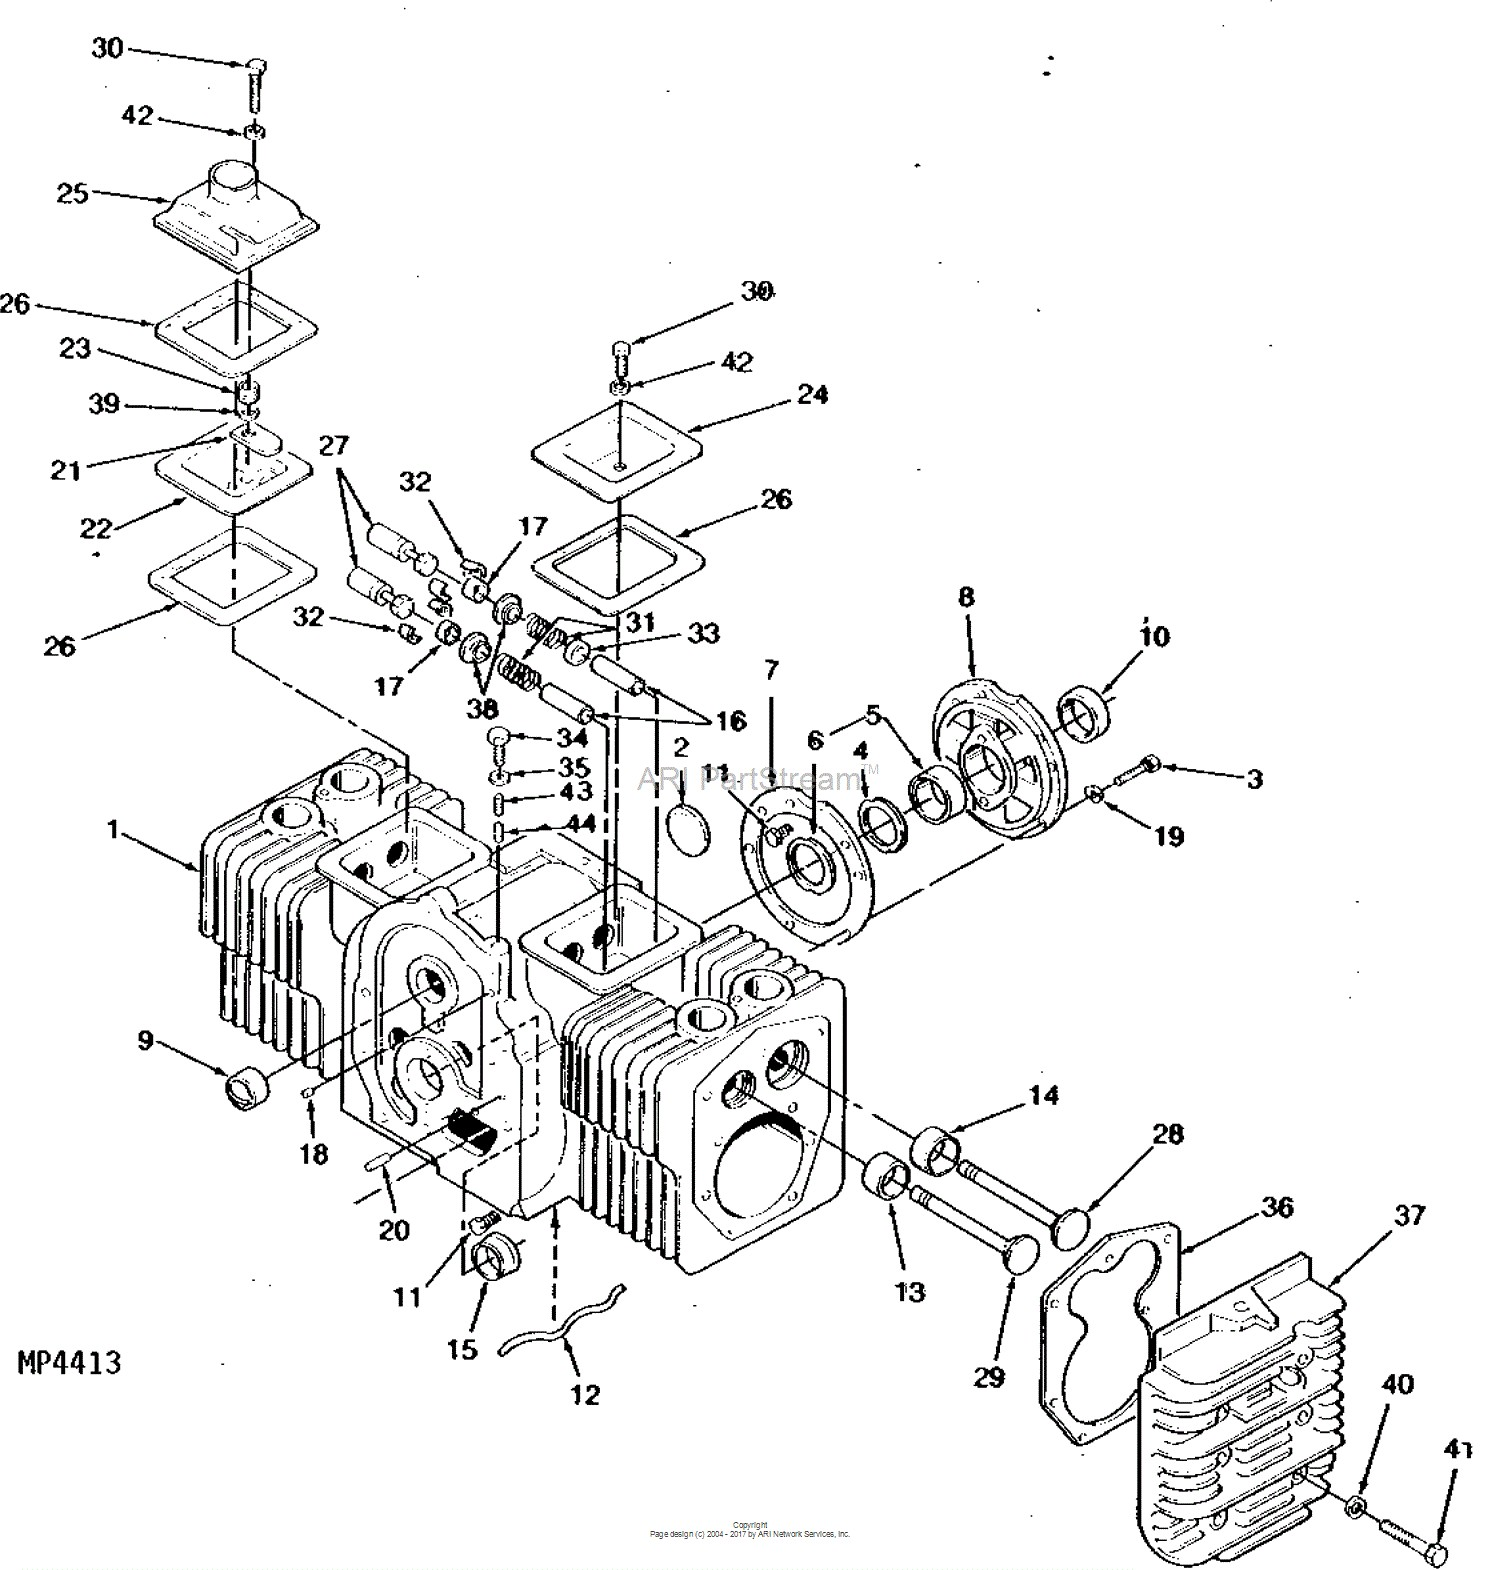 Onan Engine Parts Diagram John Deere Parts Diagrams John Deere 317  Hydrostatic Tractor 17 Hp Of